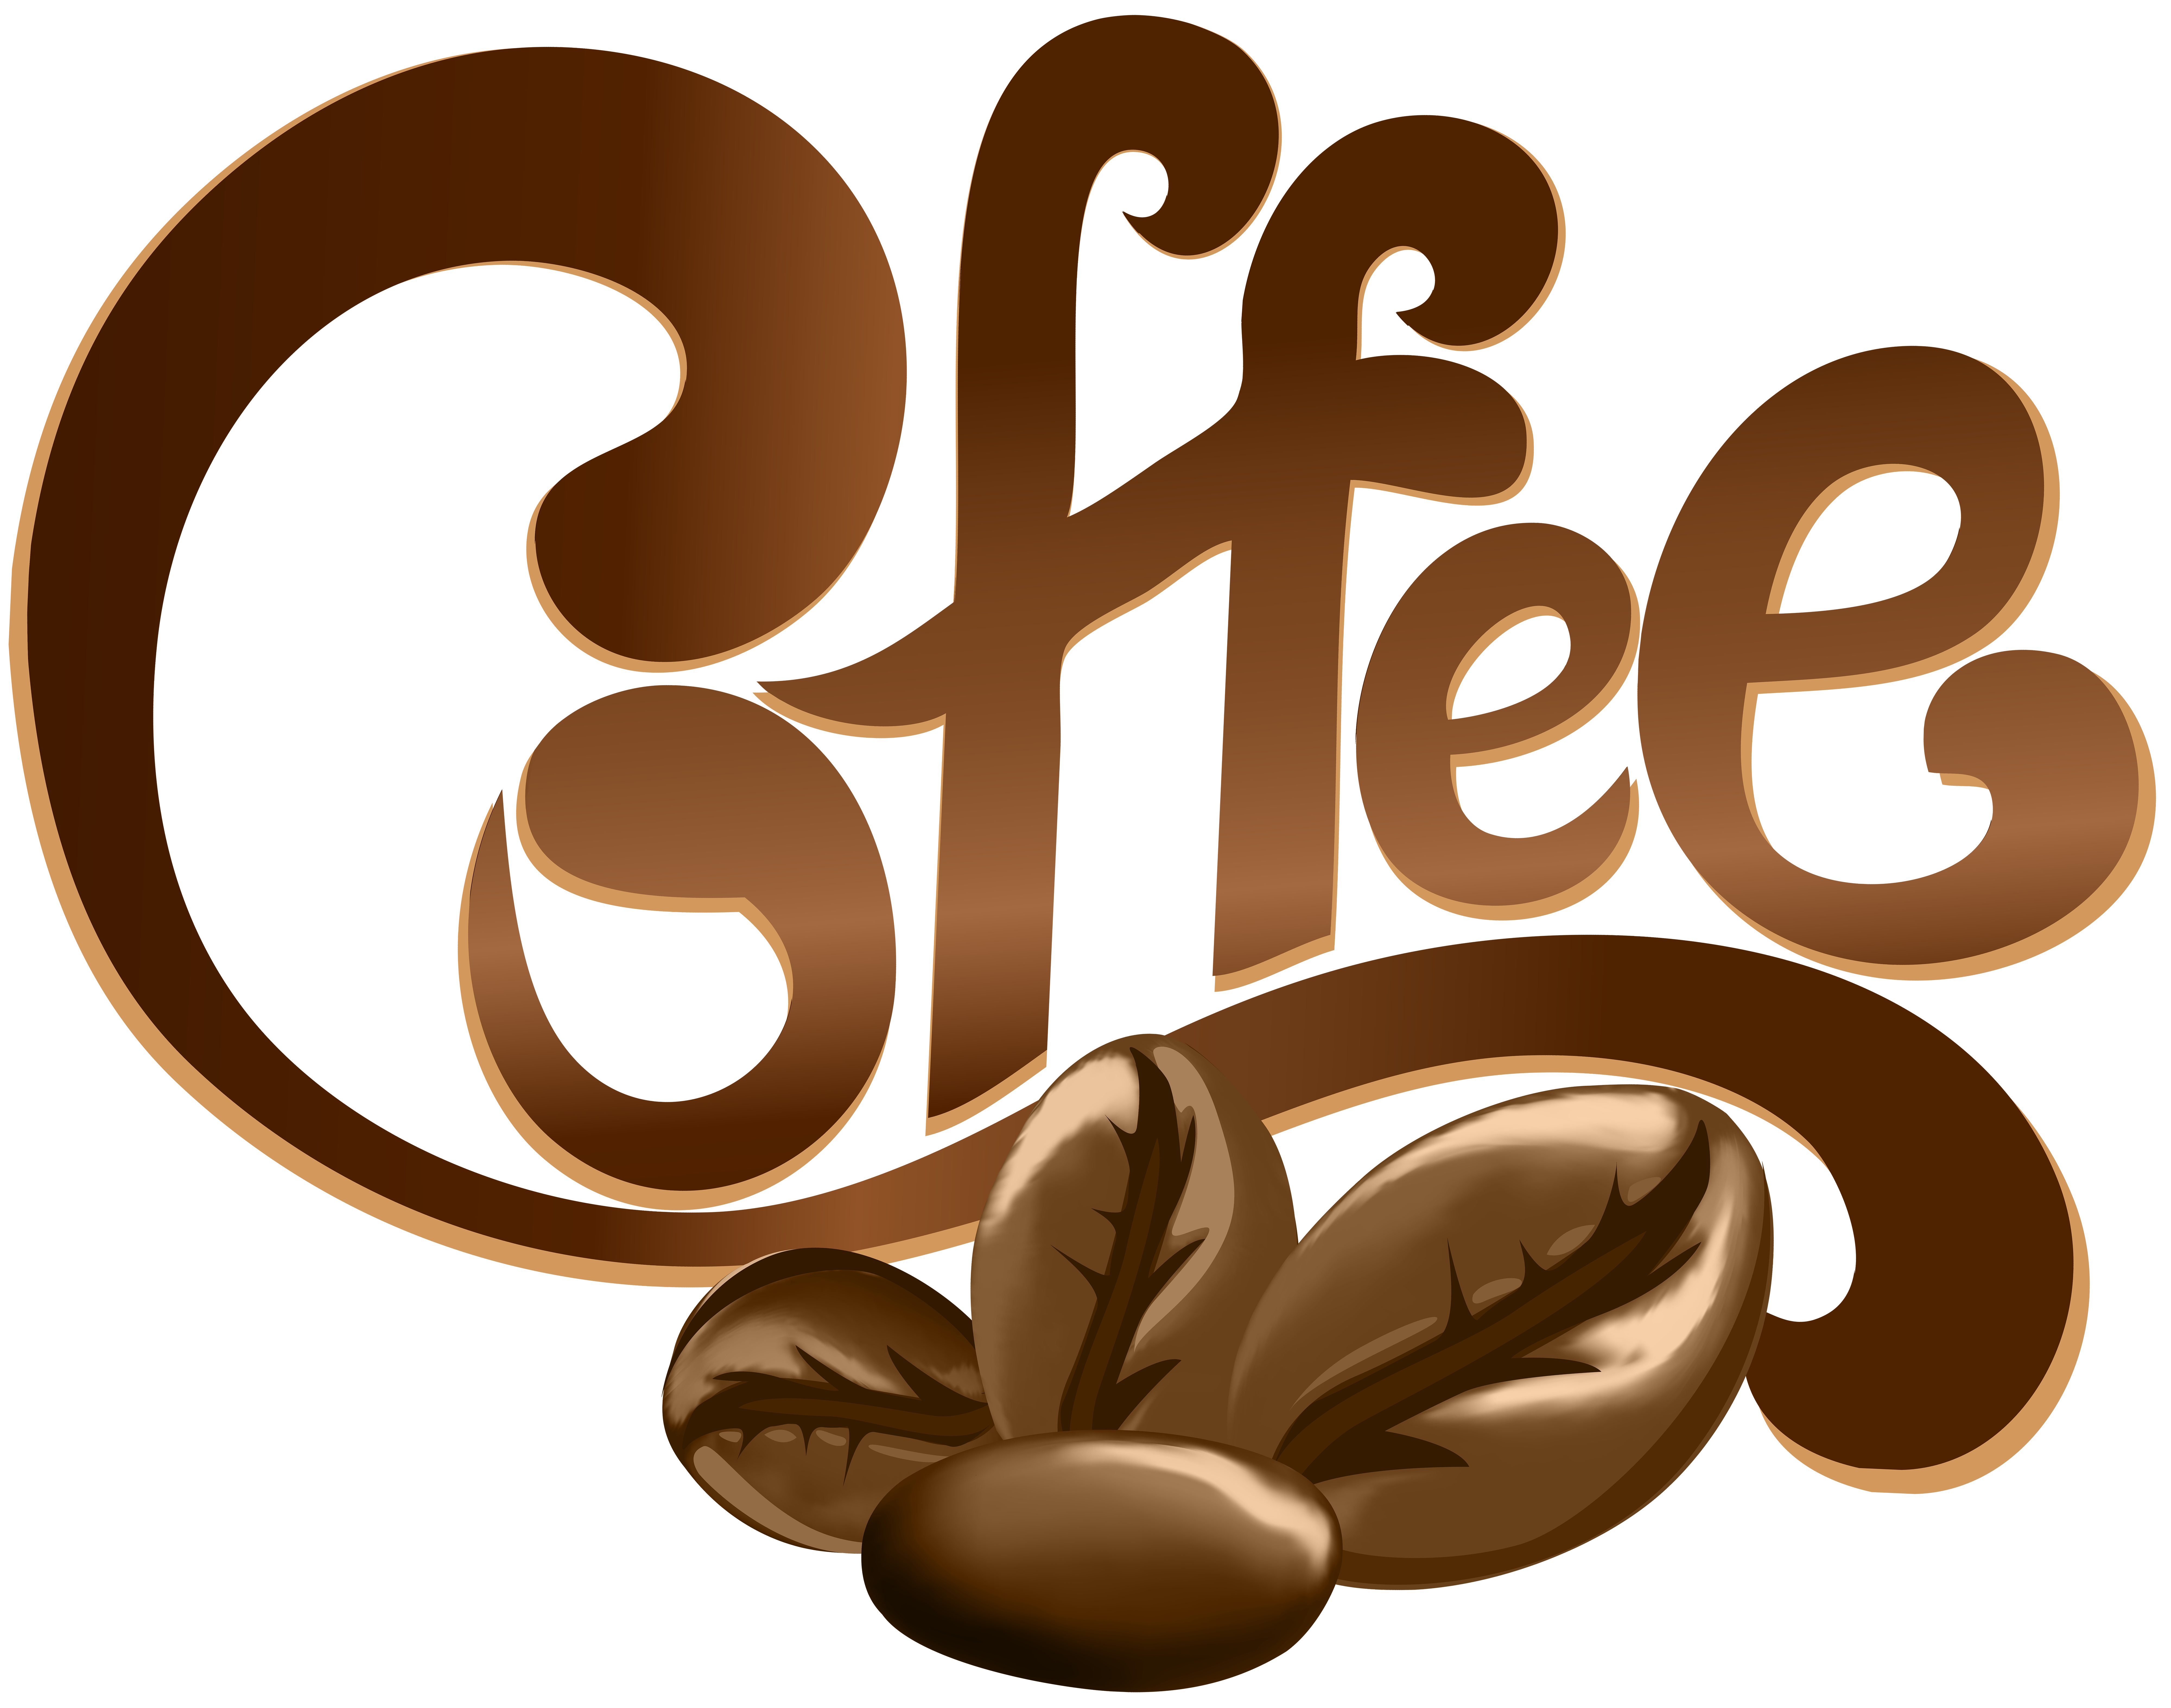 Coffee png. Clip art image gallery